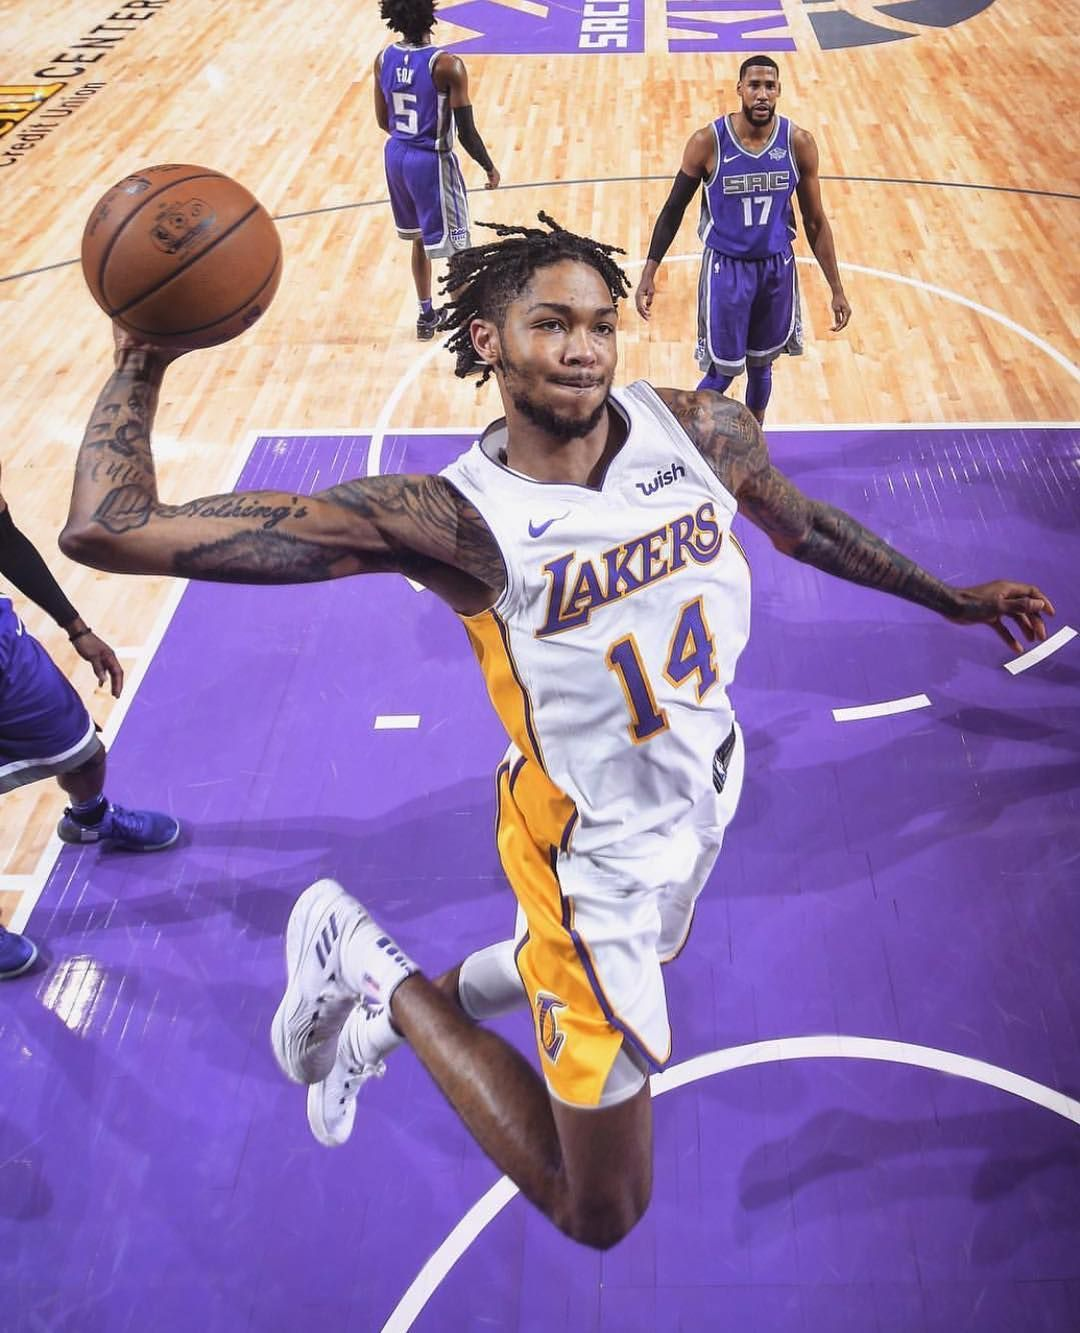 Pin by Diego Torres on My Los Angeles Lakers  bd09462efa54